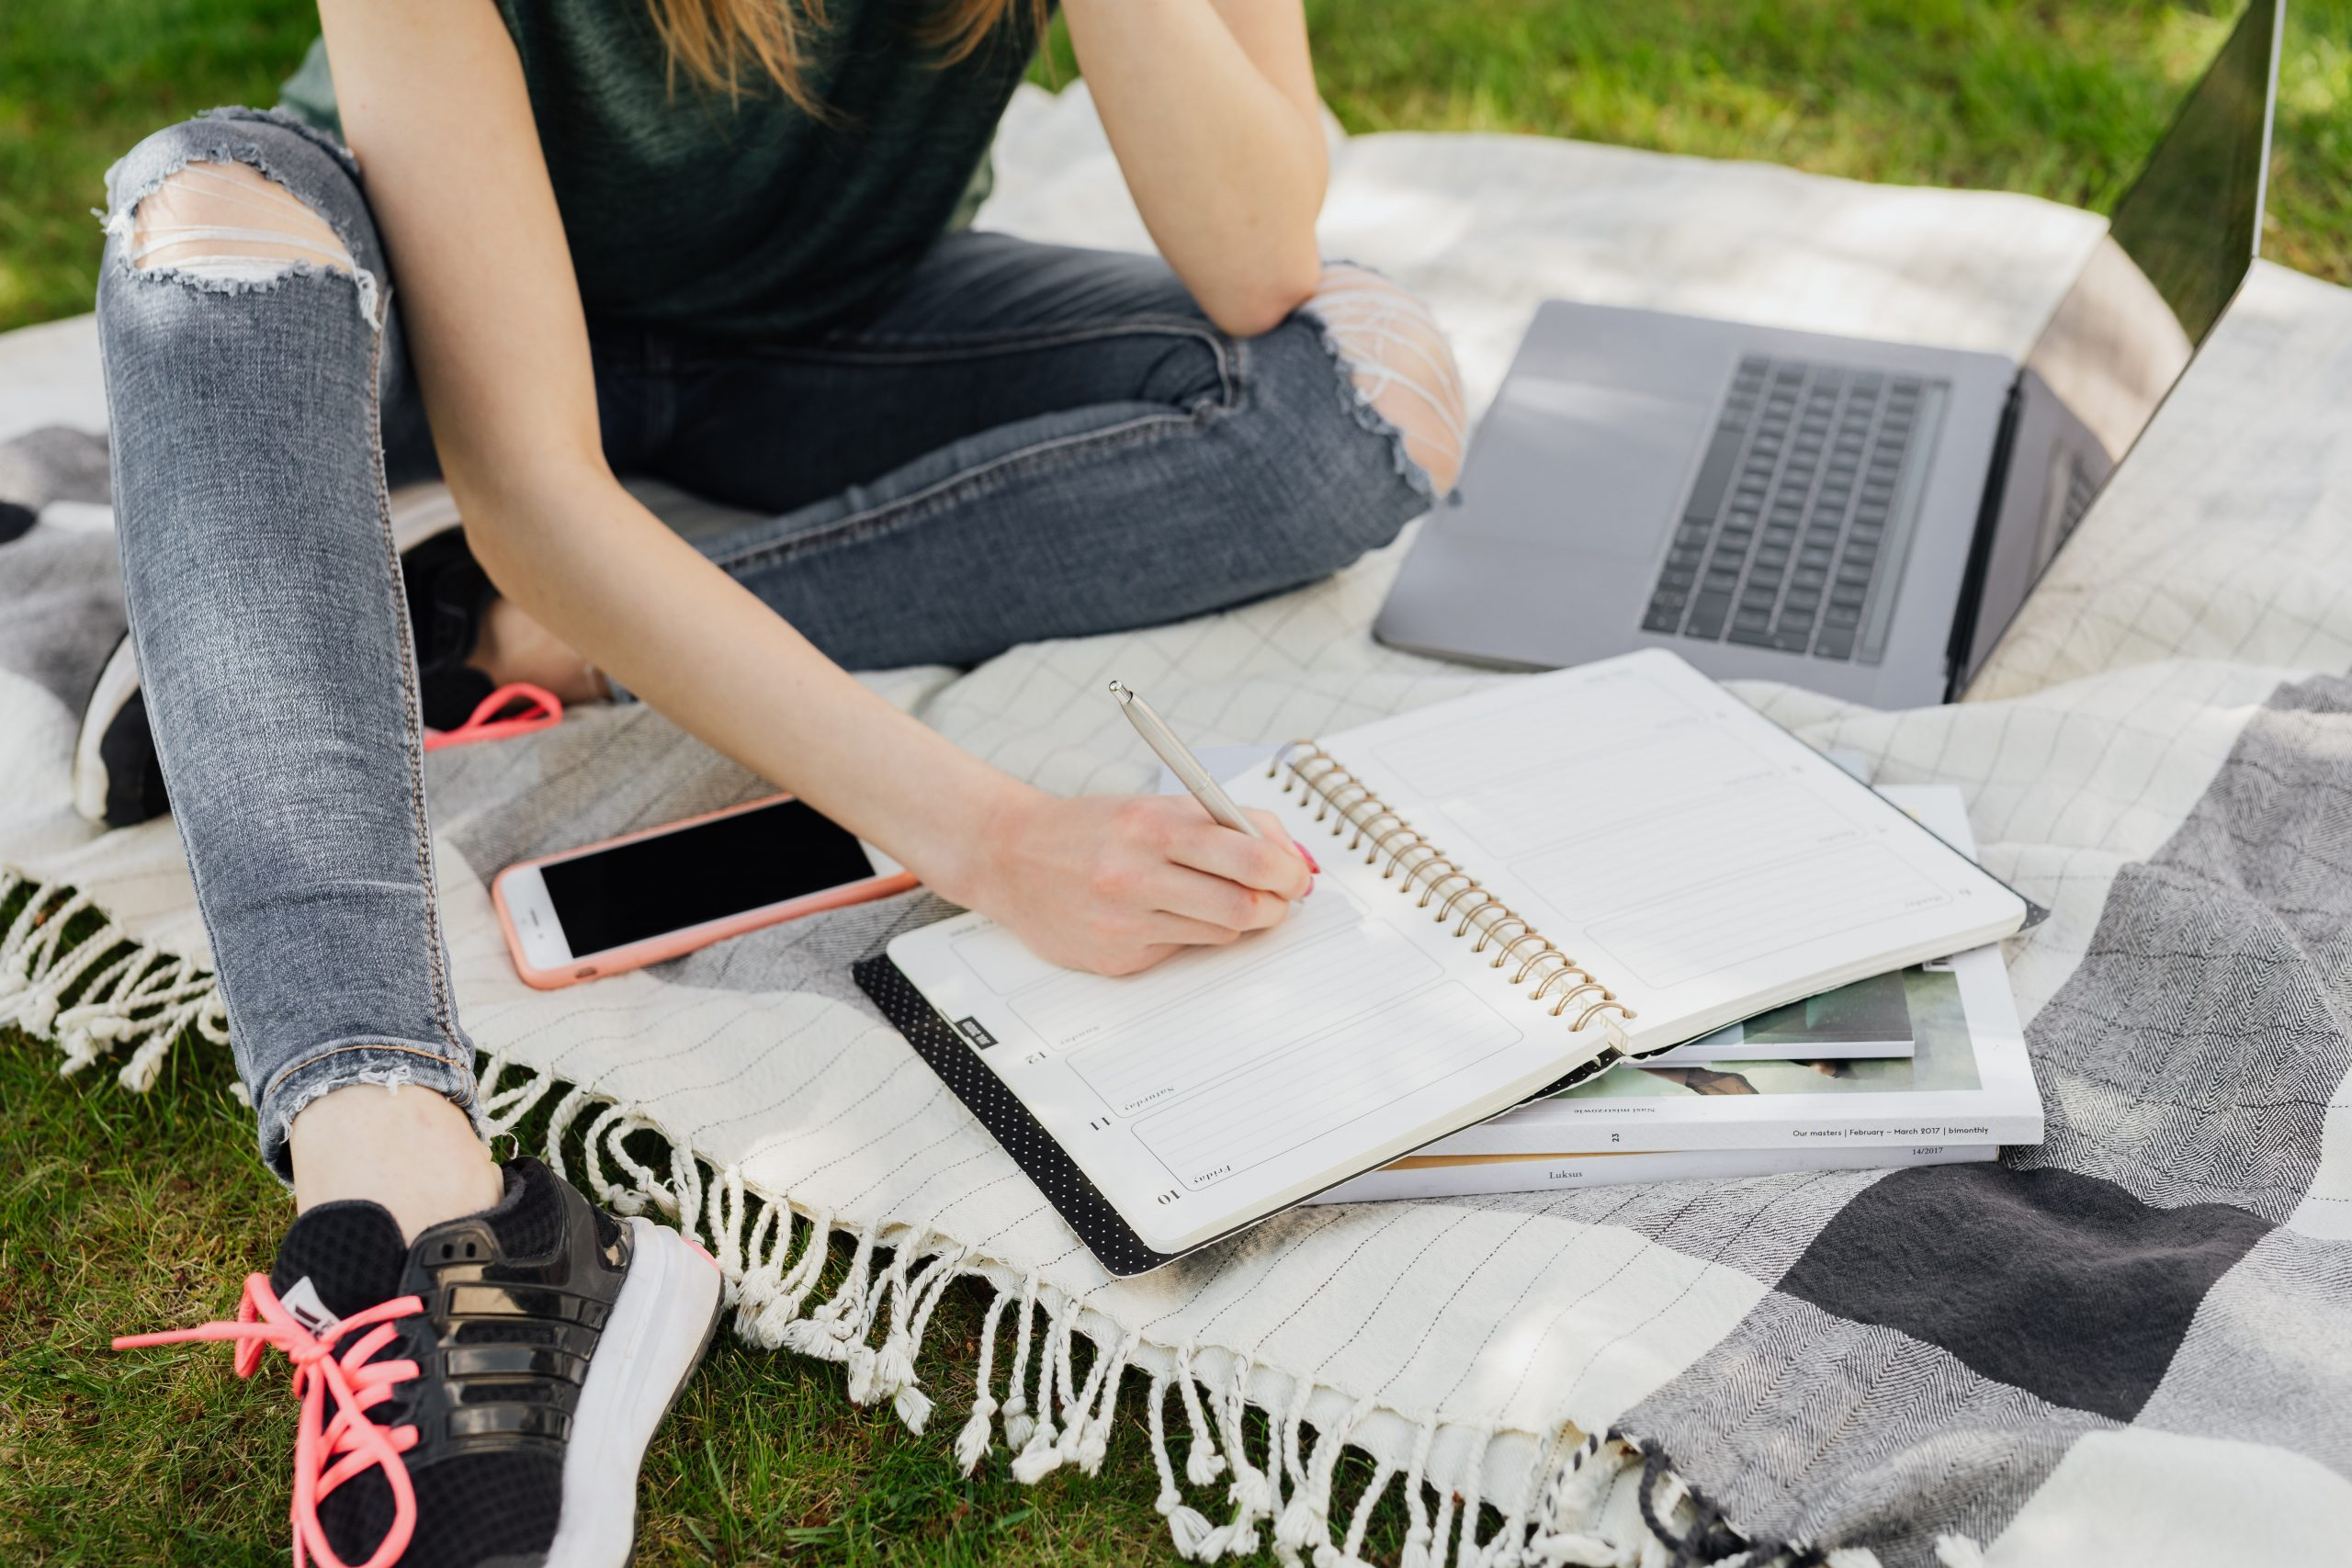 girl with laptop and notepad on blanket in grass